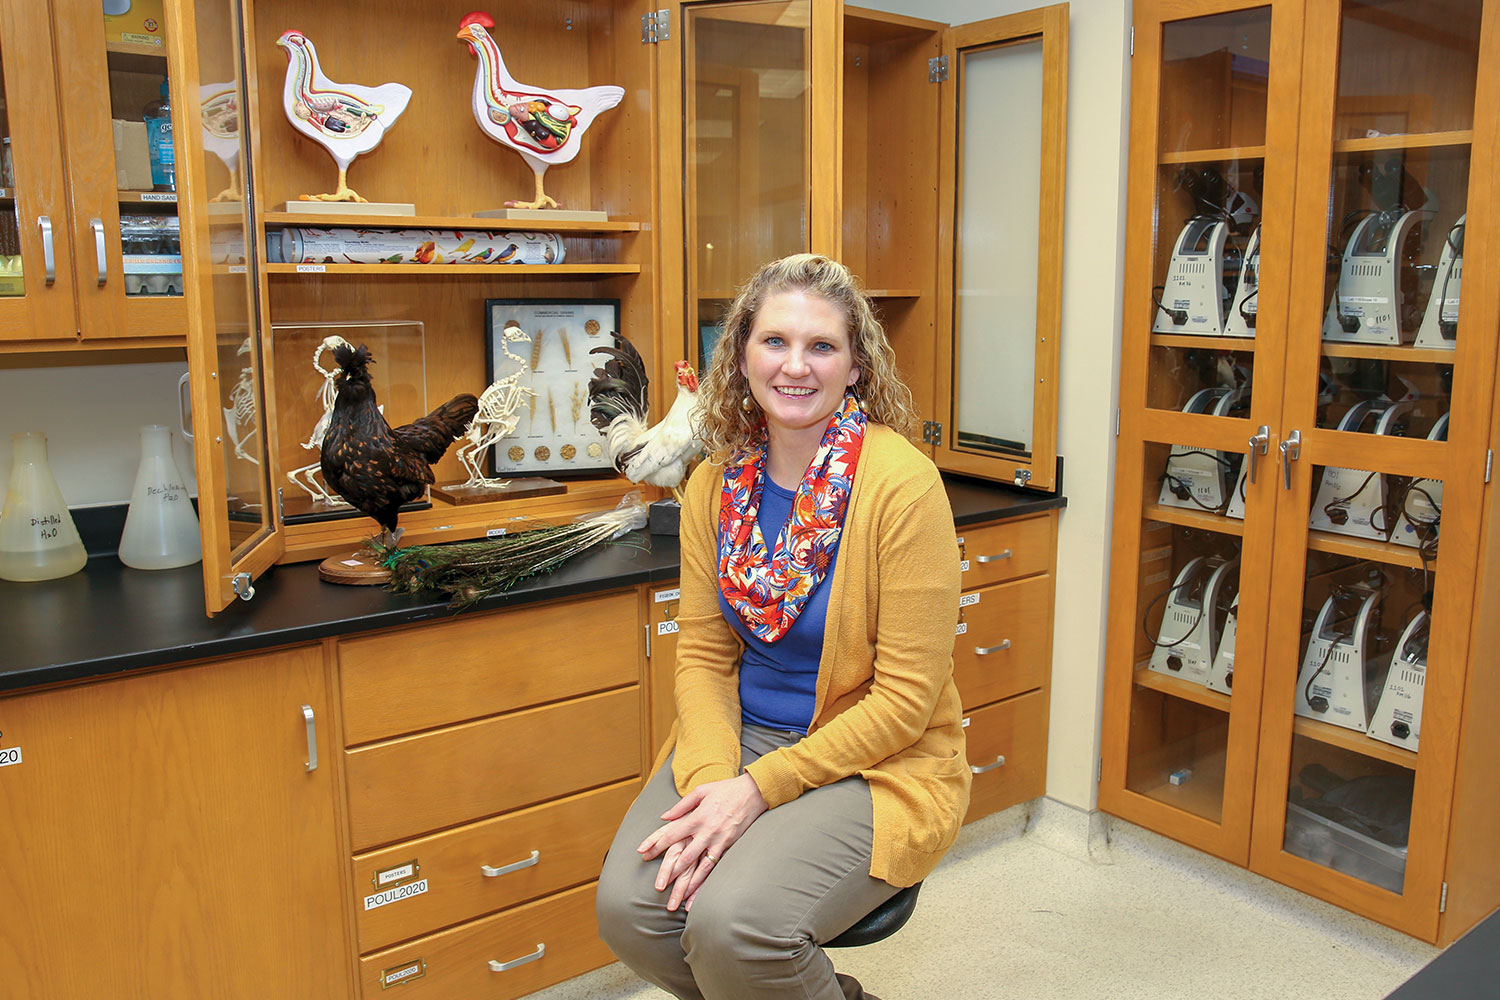 Dr. Purvis with her chickens